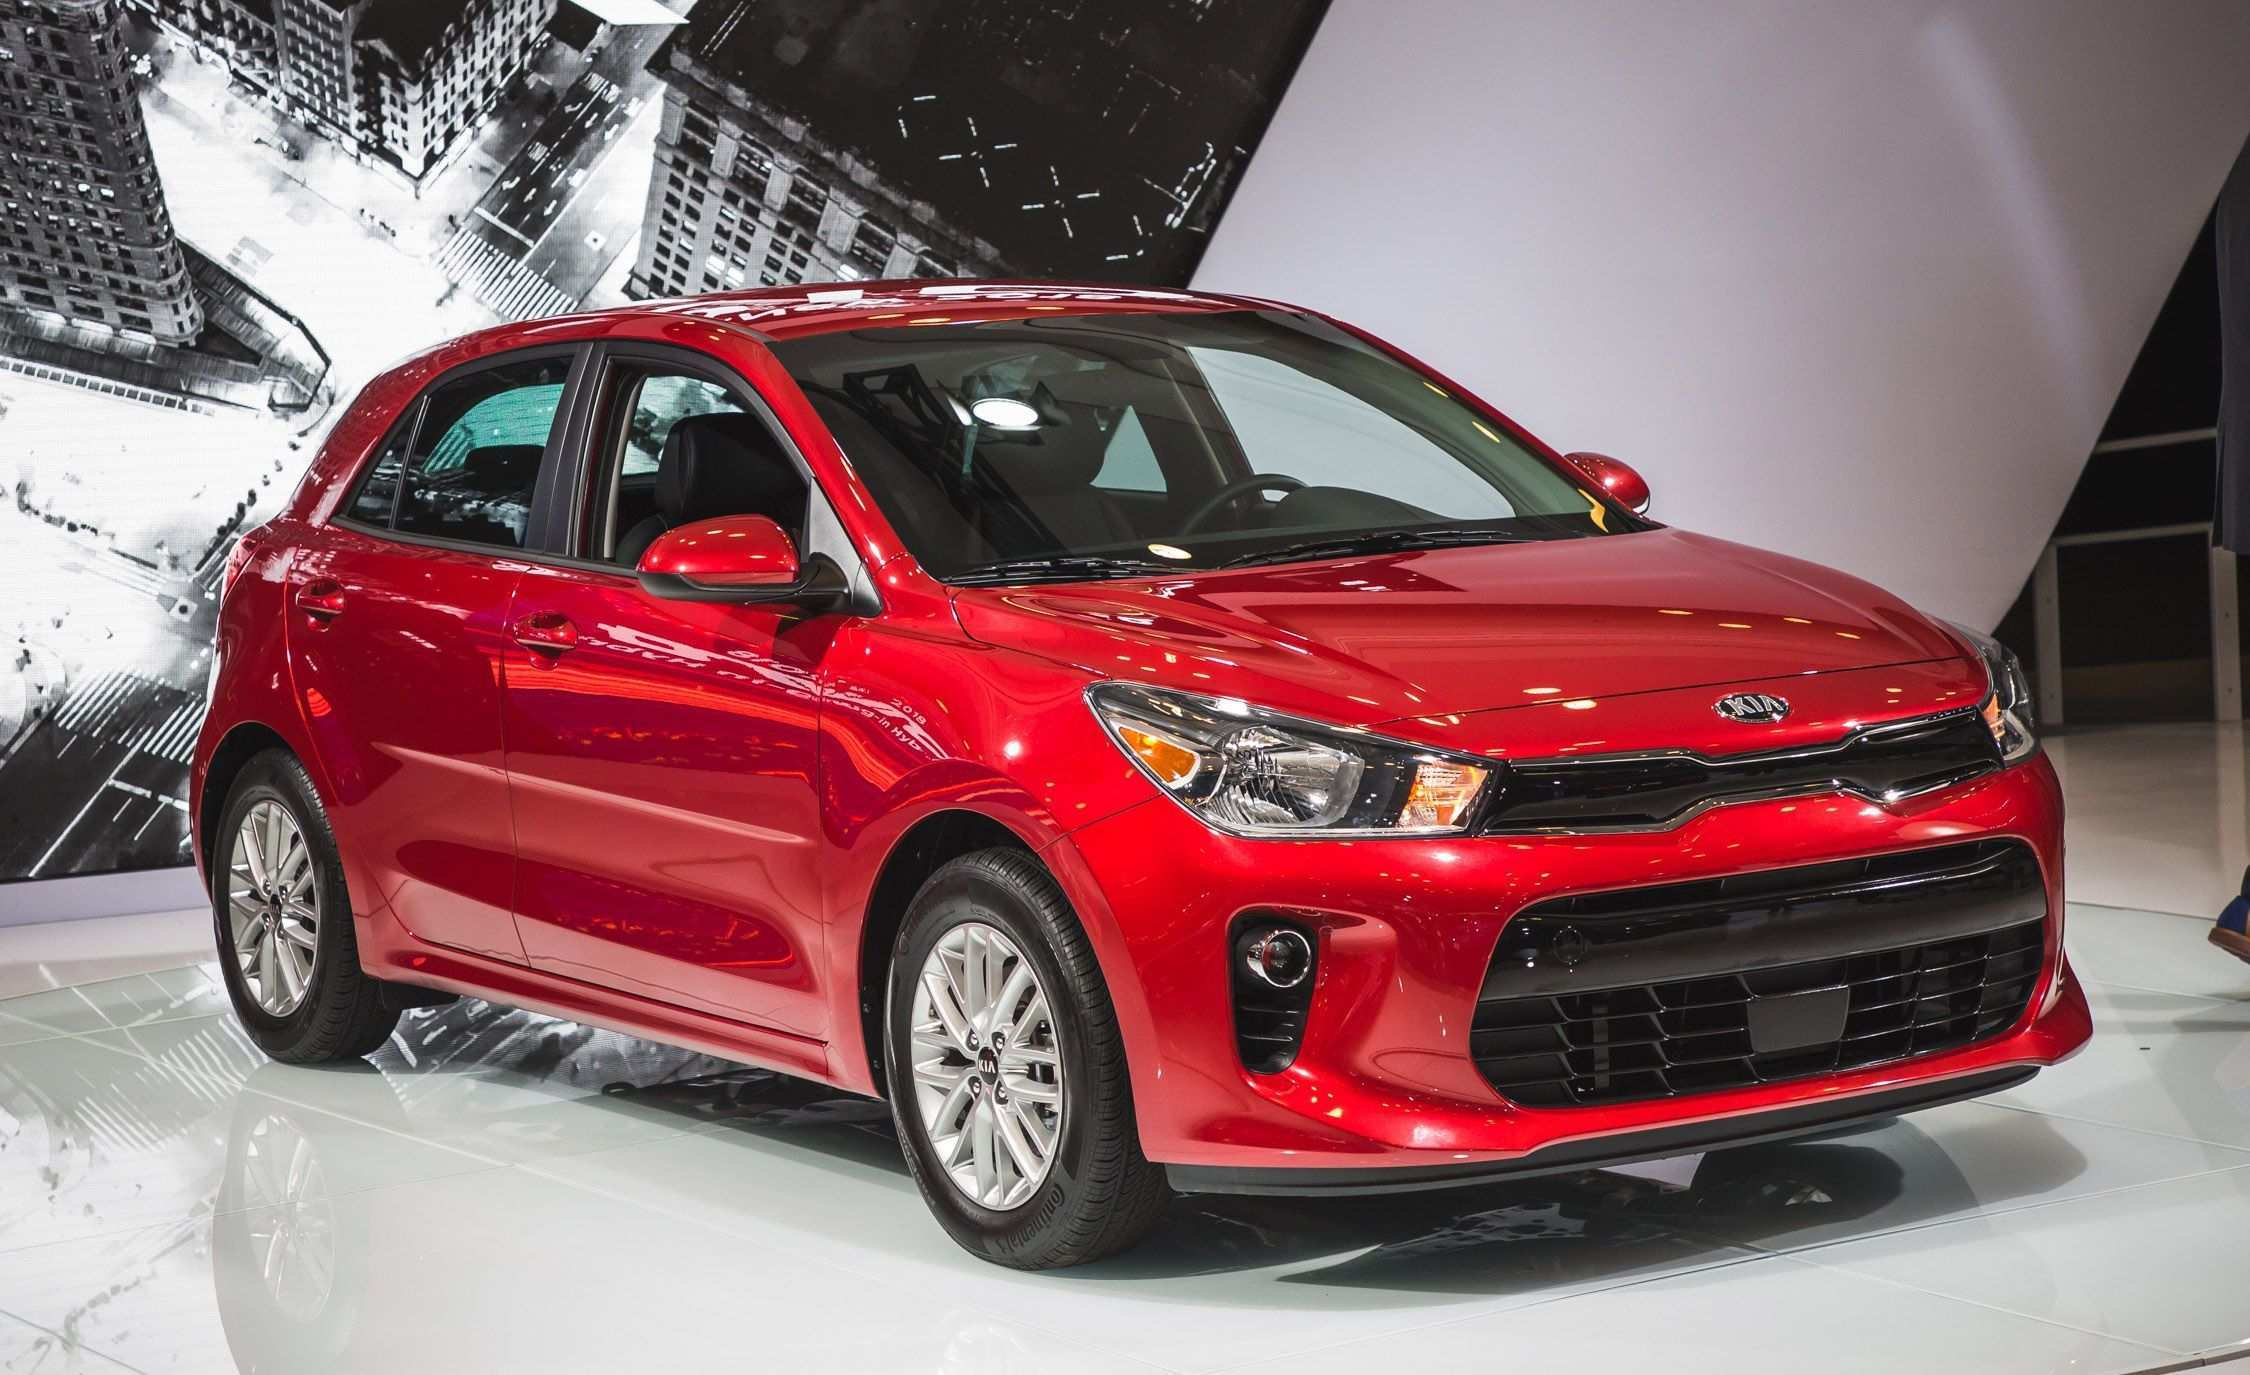 61 Best Review 2020 All Kia Rio History by 2020 All Kia Rio